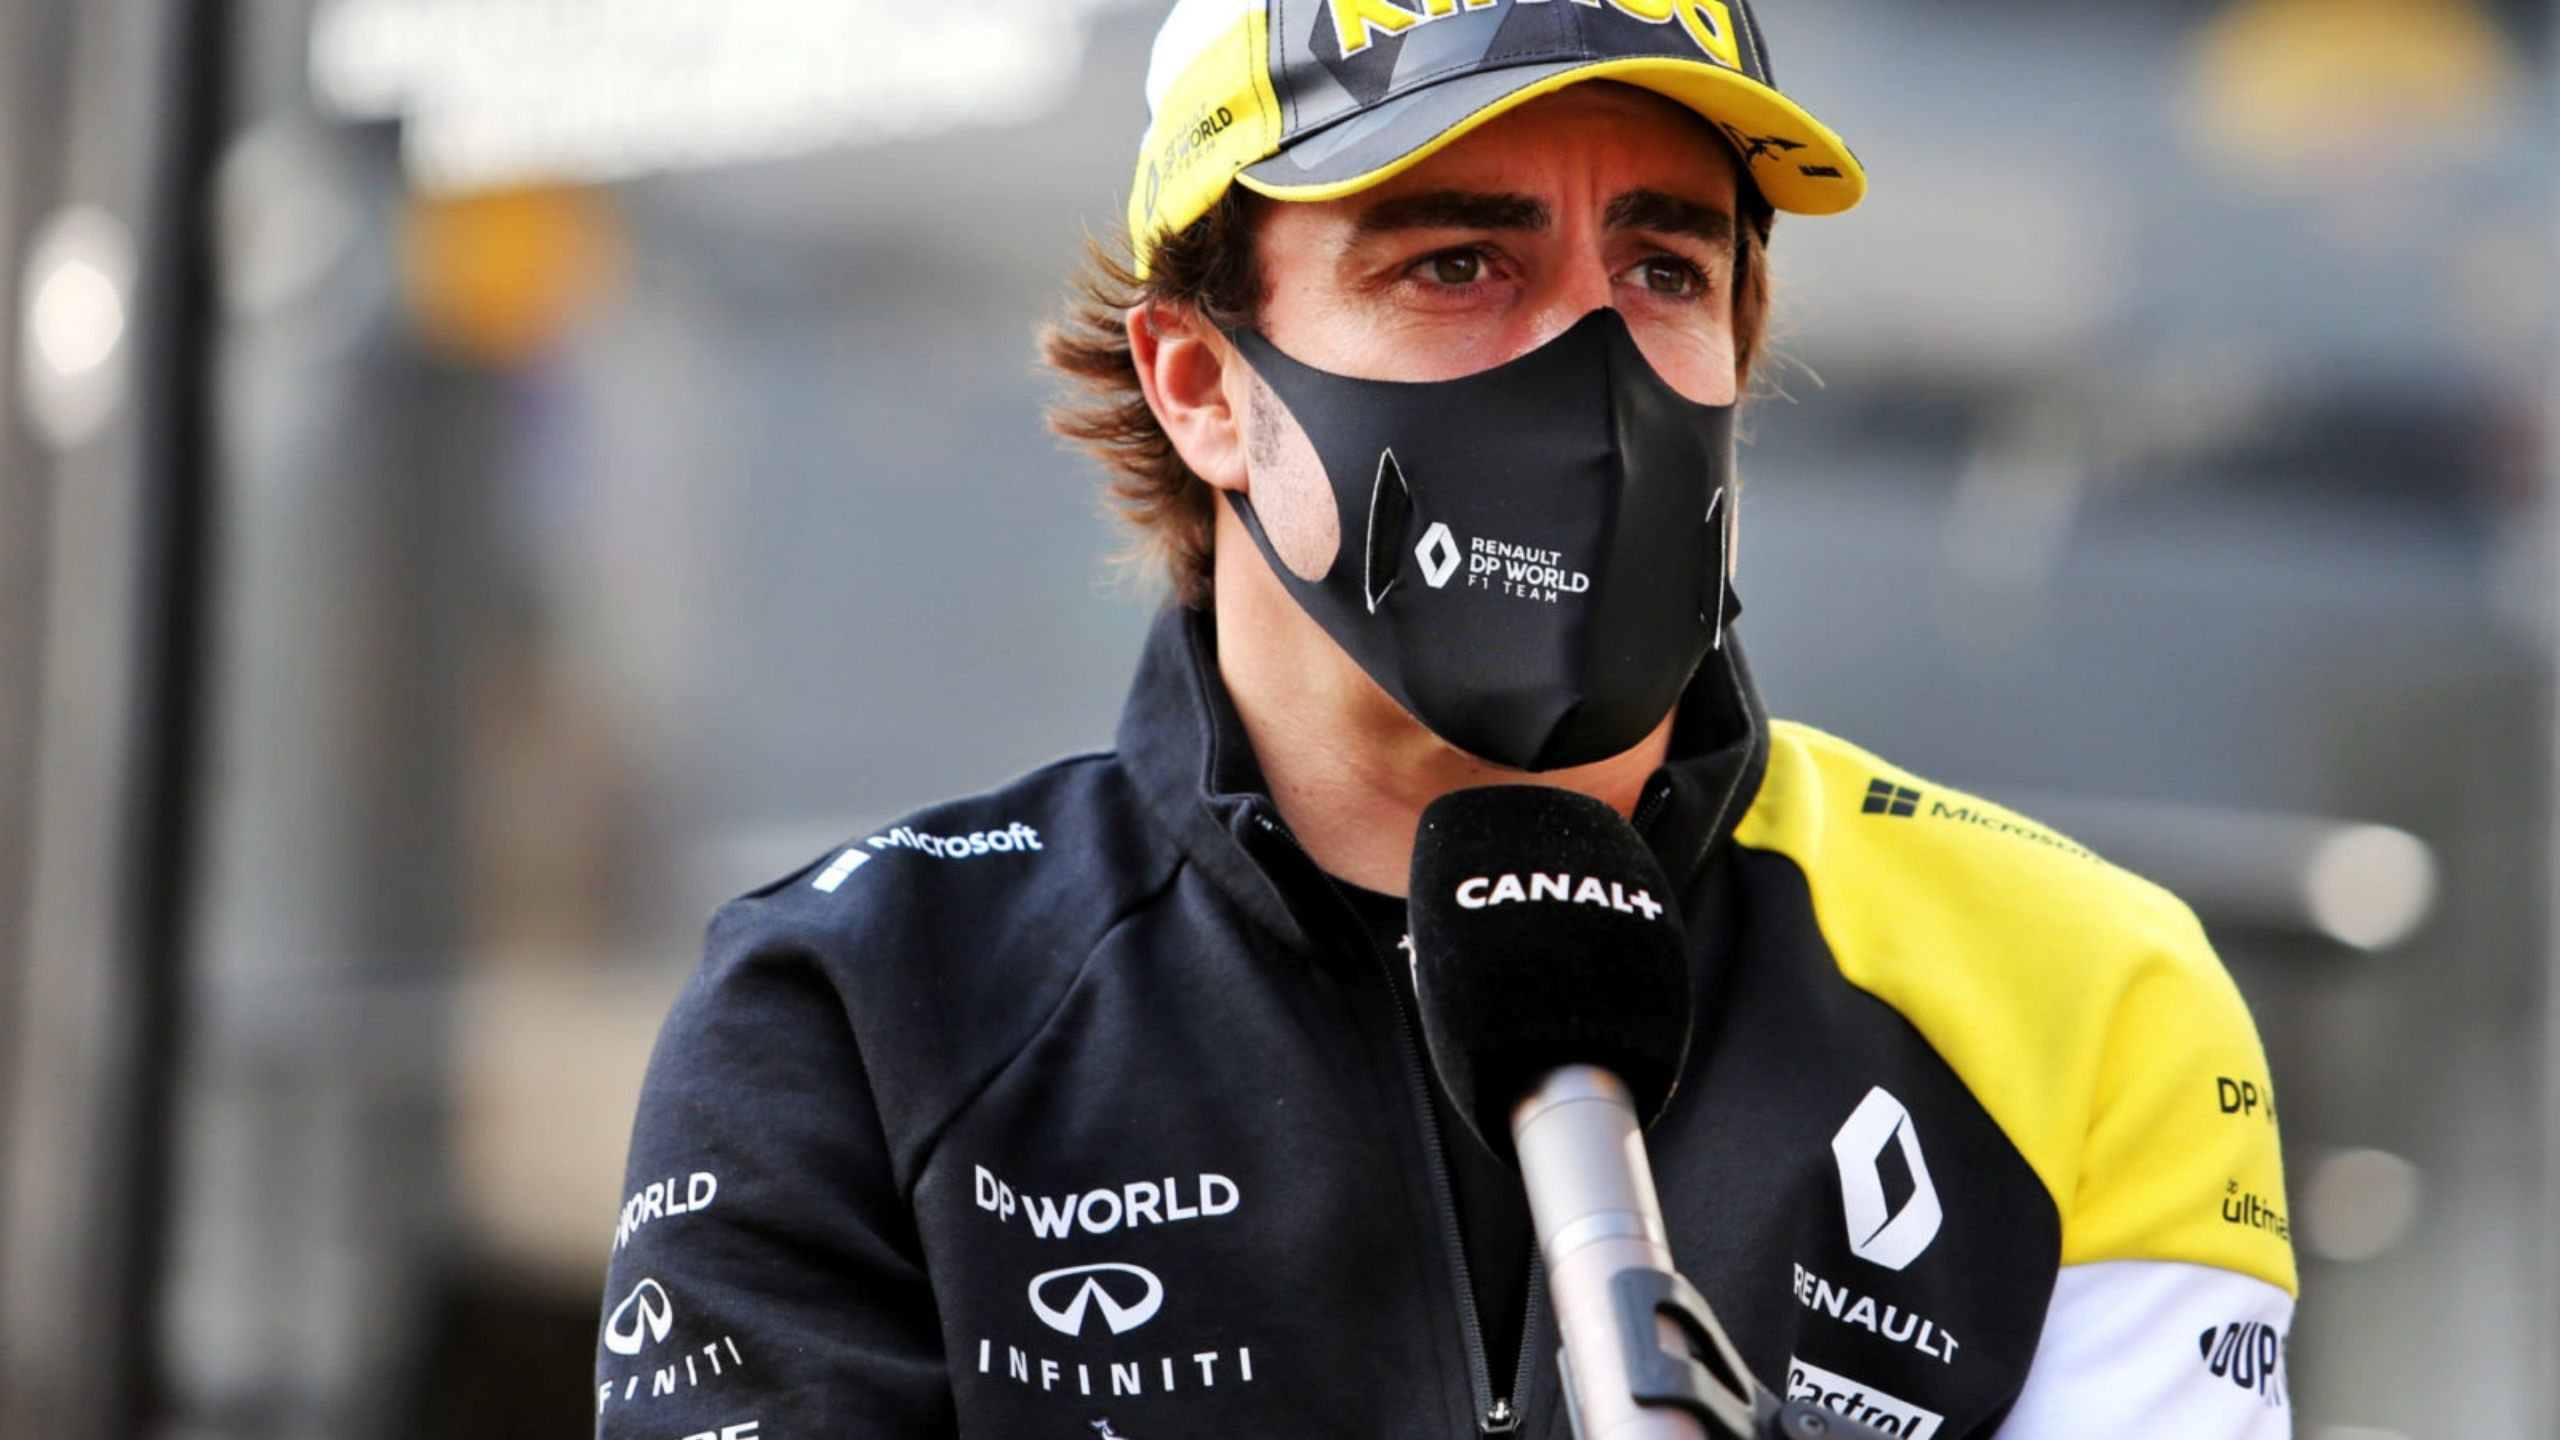 Fernando Alonso one step ahead of his rivals as he convinces Renault to wind tunnel test their 2022 F1 car on New Year's Day